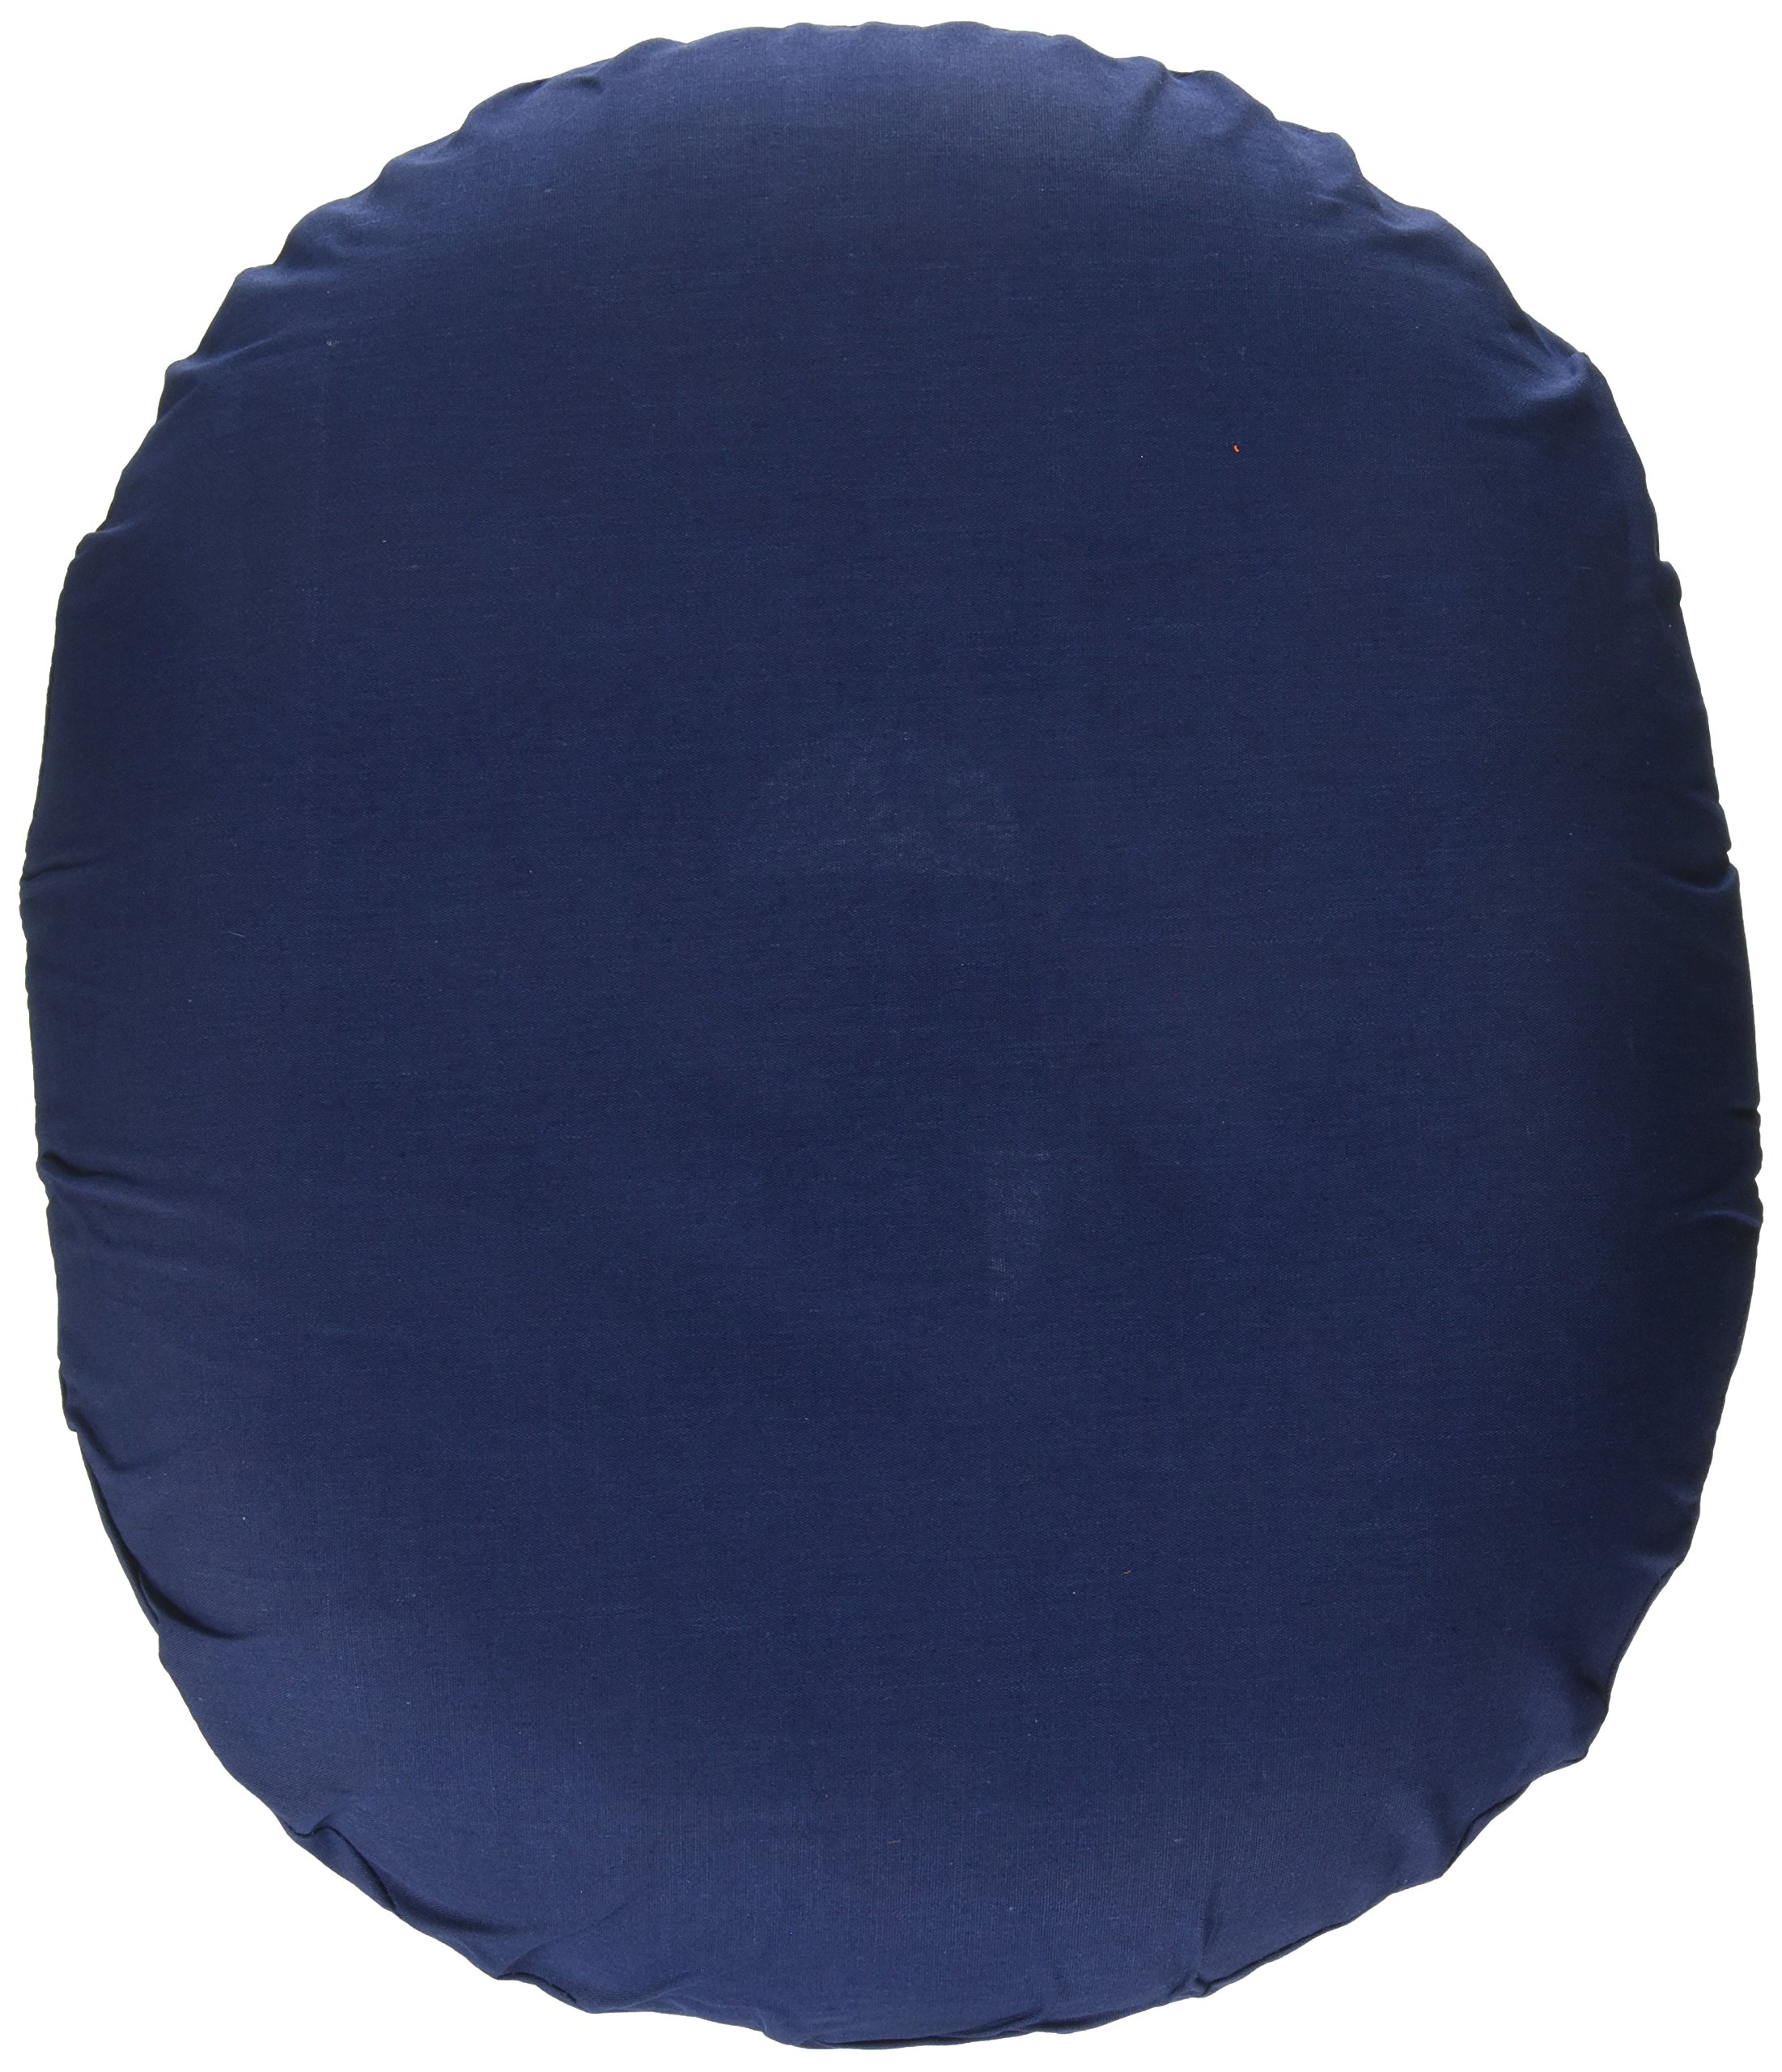 Pcp Removable Foam Ring Cushion, Navy, 14 inch